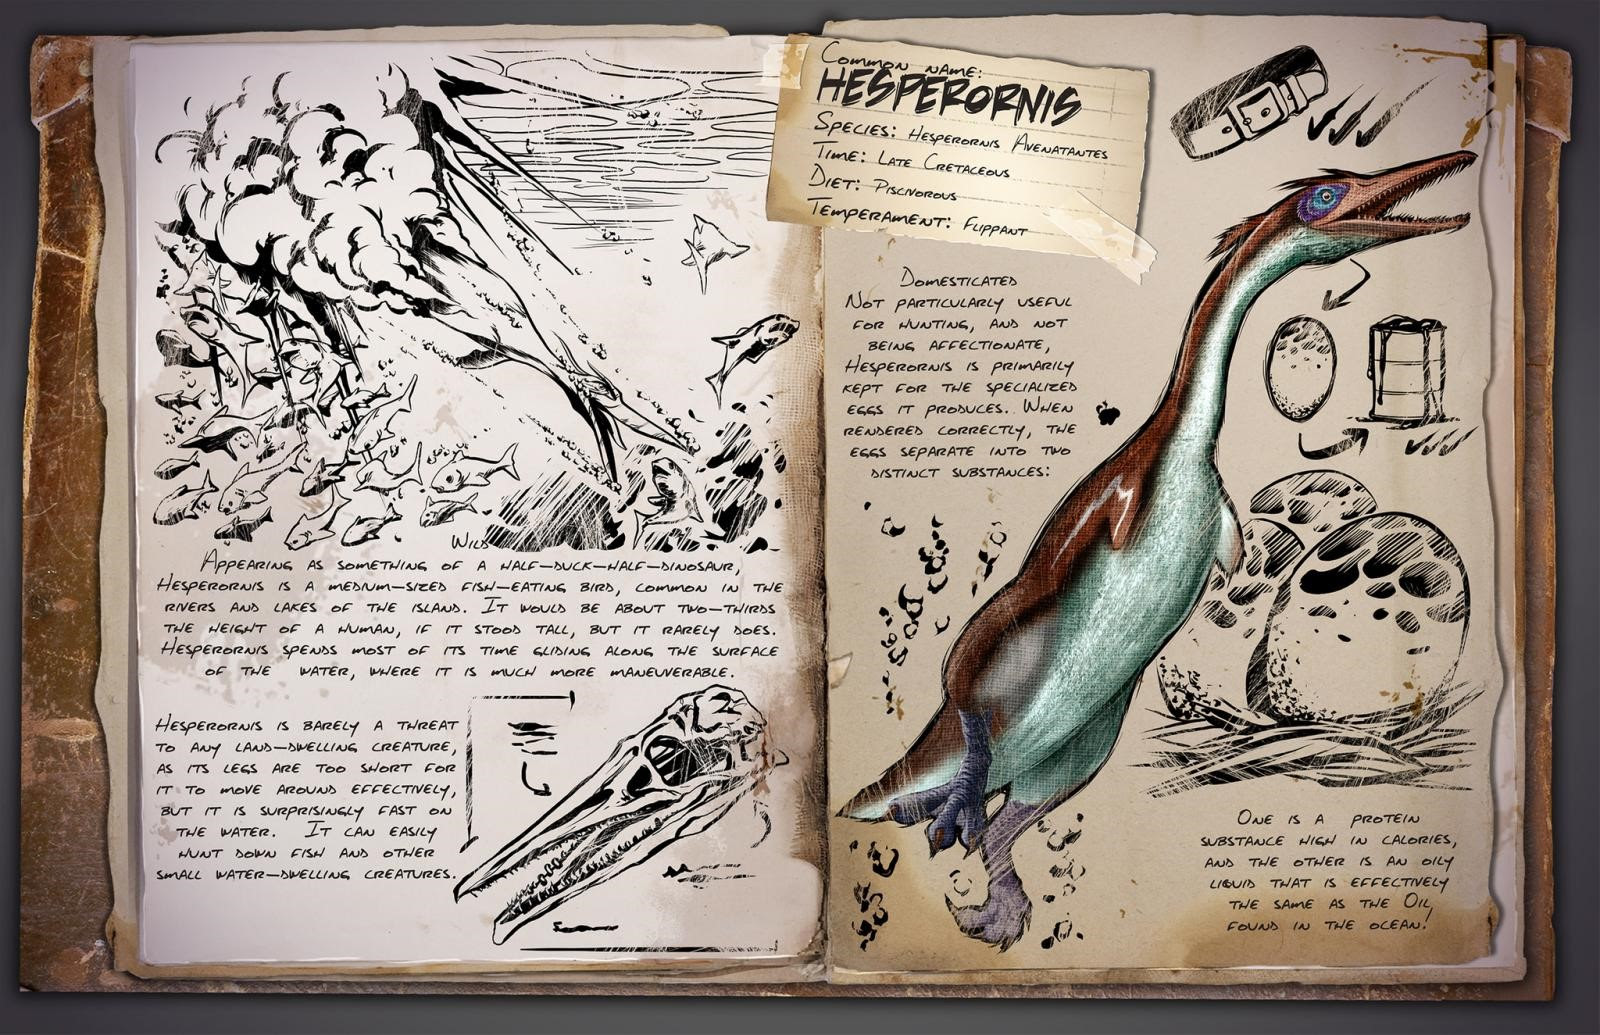 ARK: Survival Evolved - Hesperornis